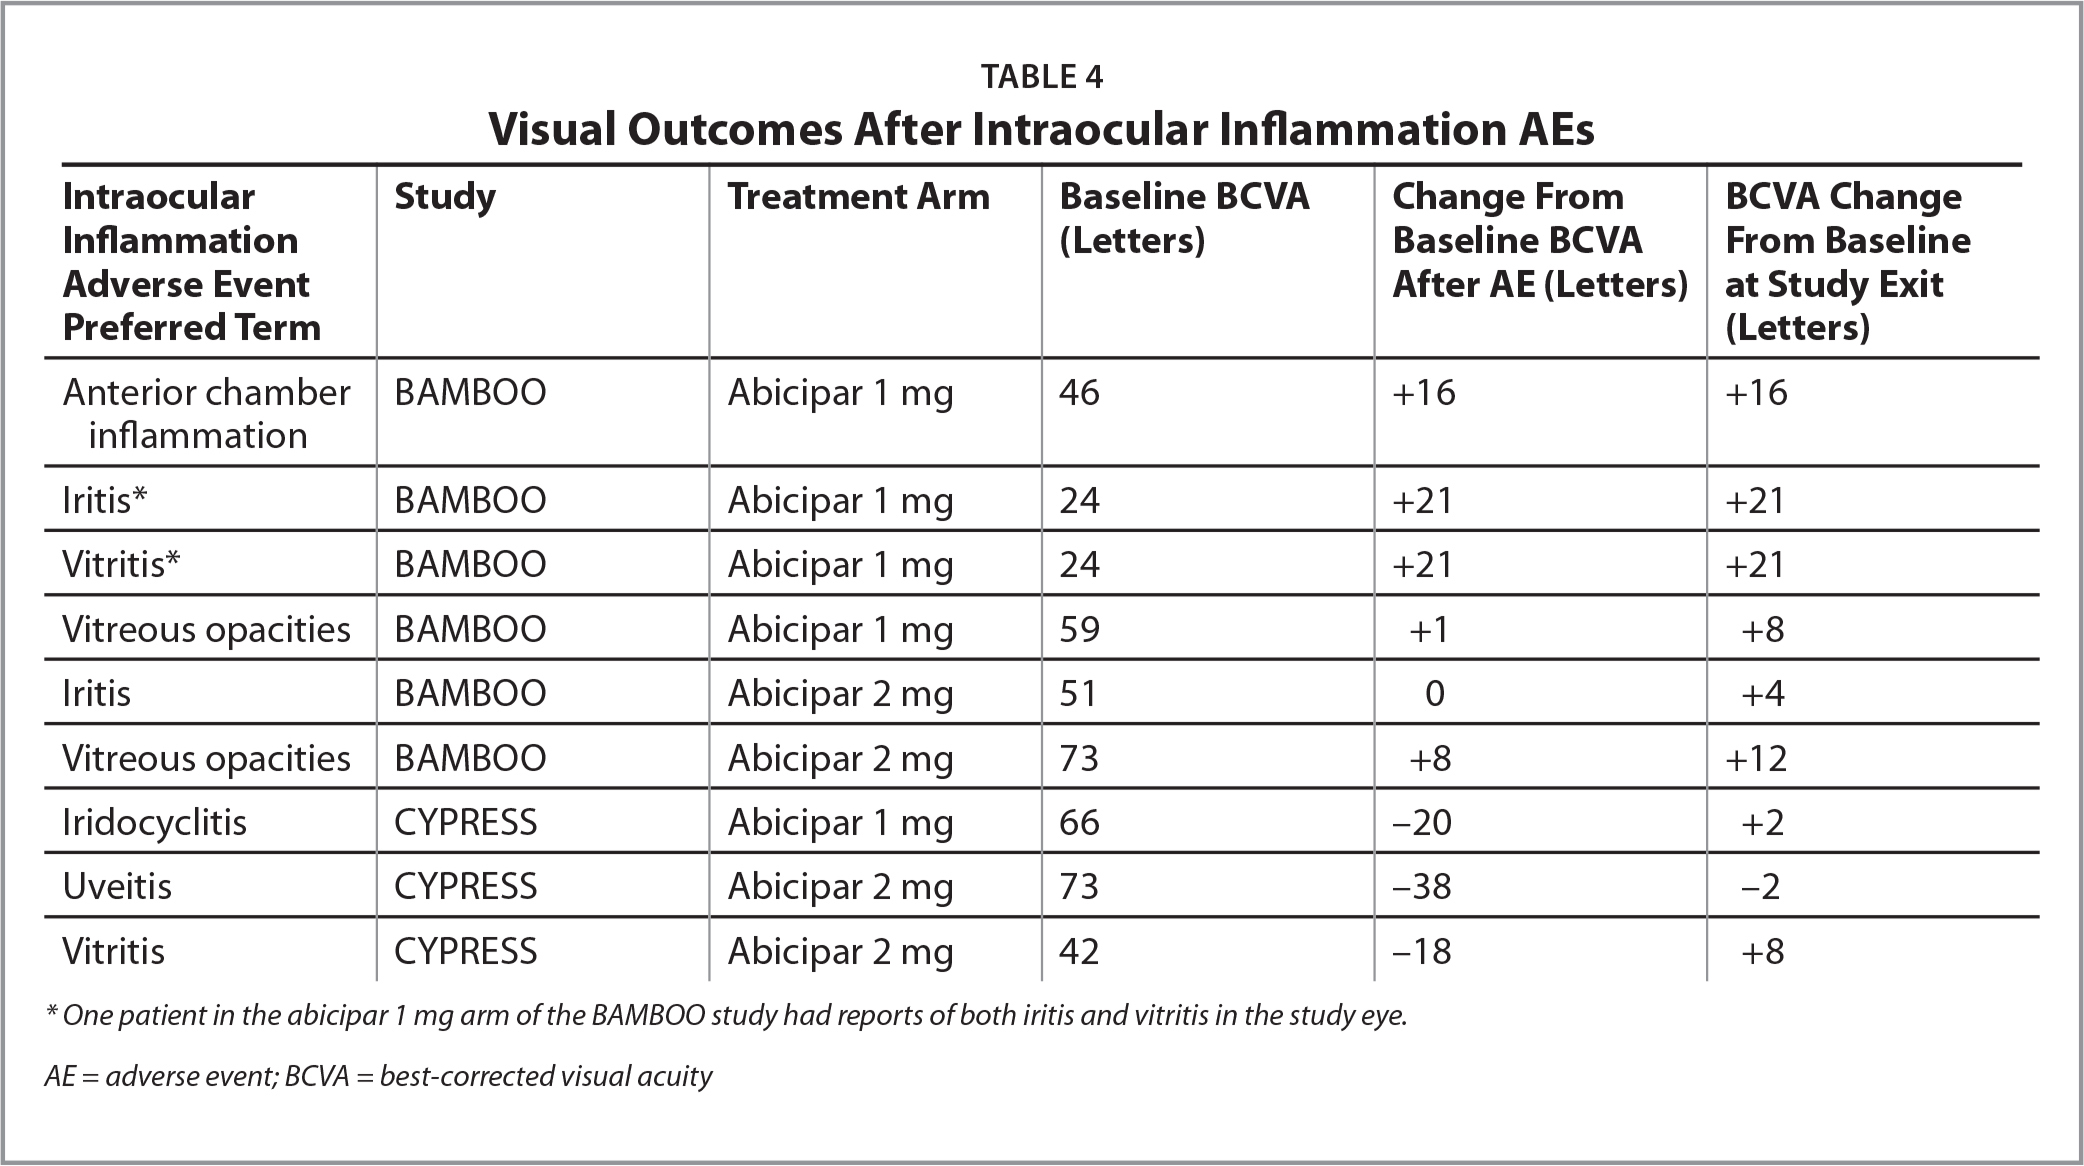 Visual Outcomes After Intraocular Inflammation AEs